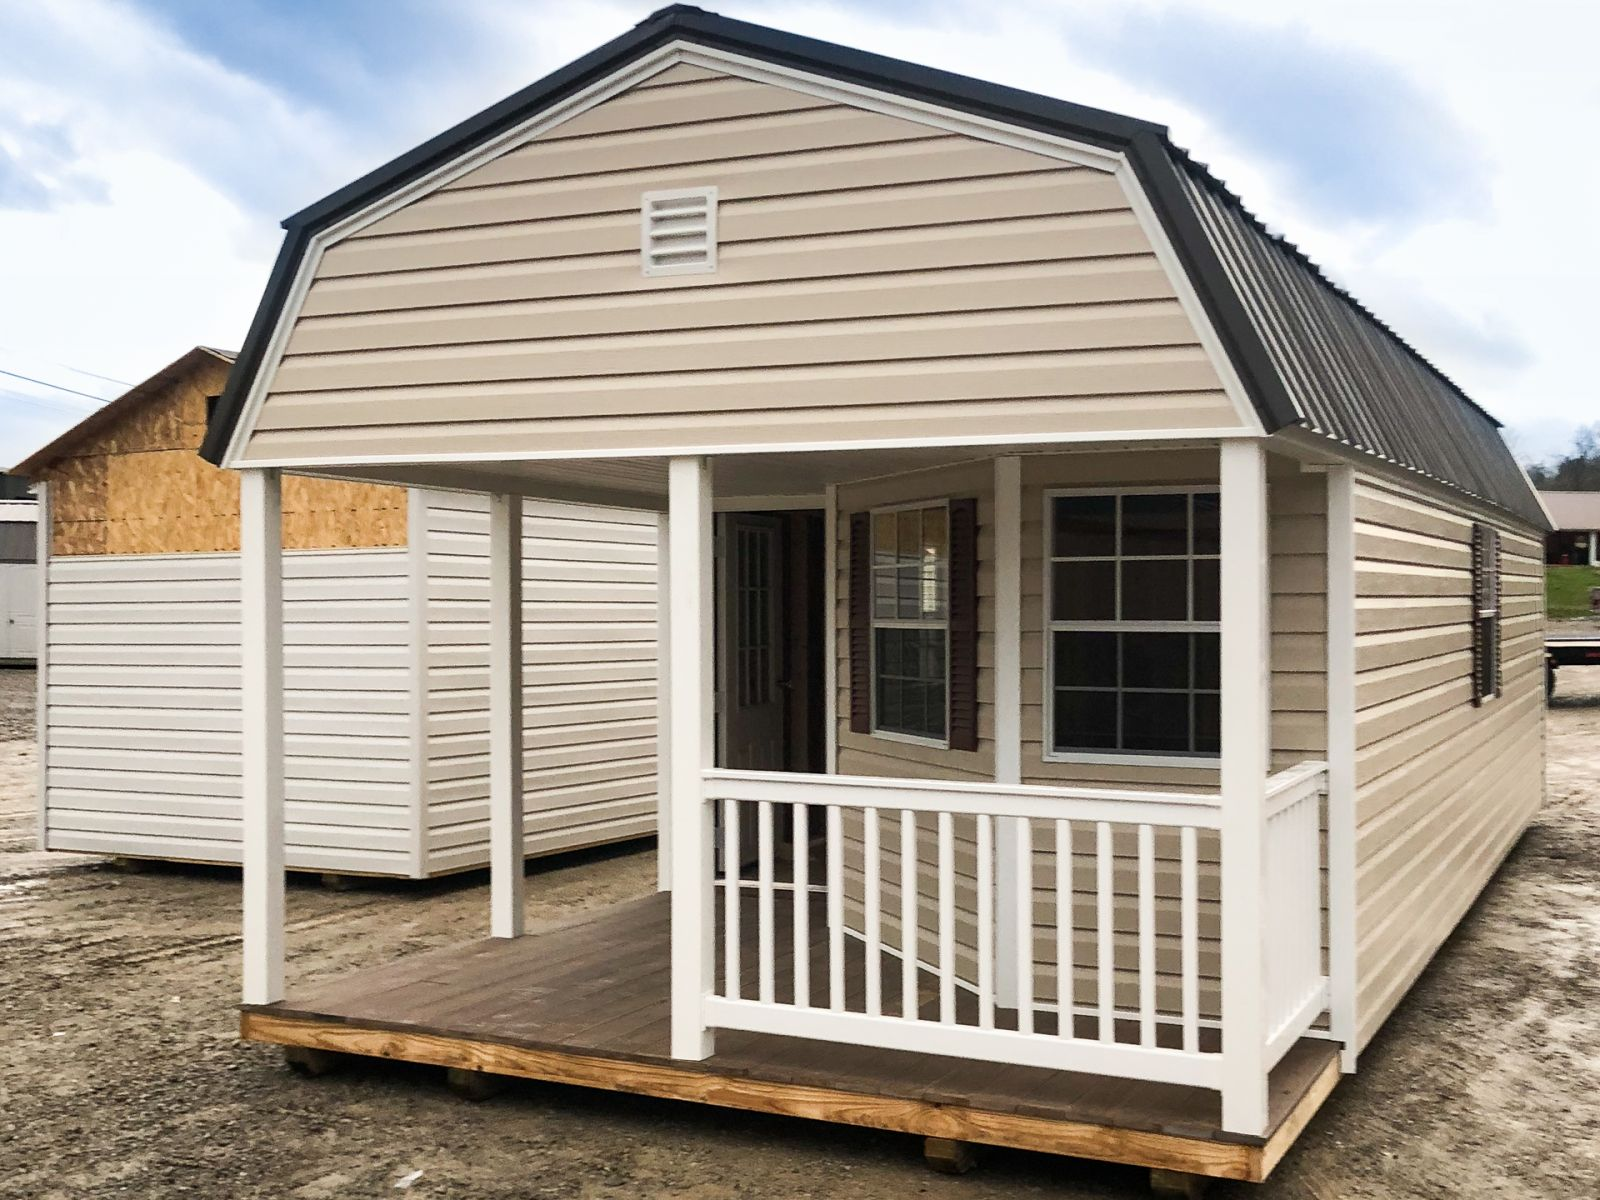 A prefab cabin shed for sale in Paris, TN